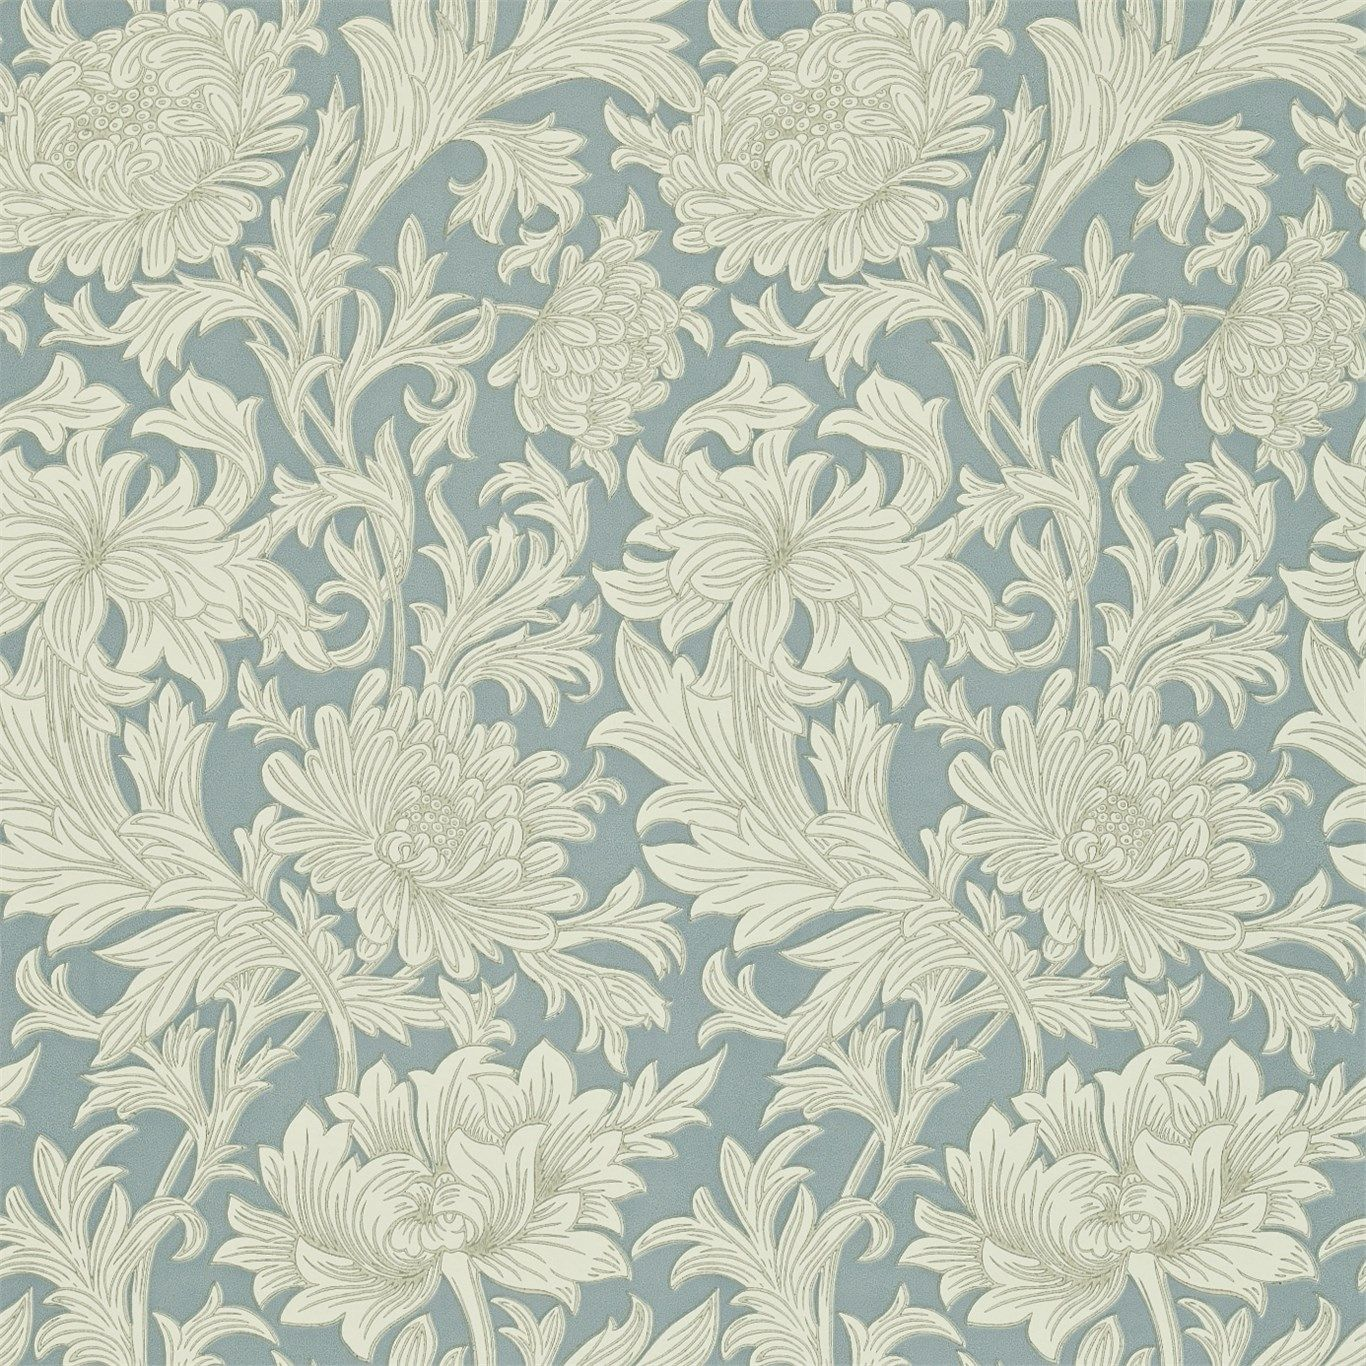 Designer wallpaper online store for usa canada morris co the original morris co arts and crafts fabrics and wallpaper designs by william morris company sisterspd